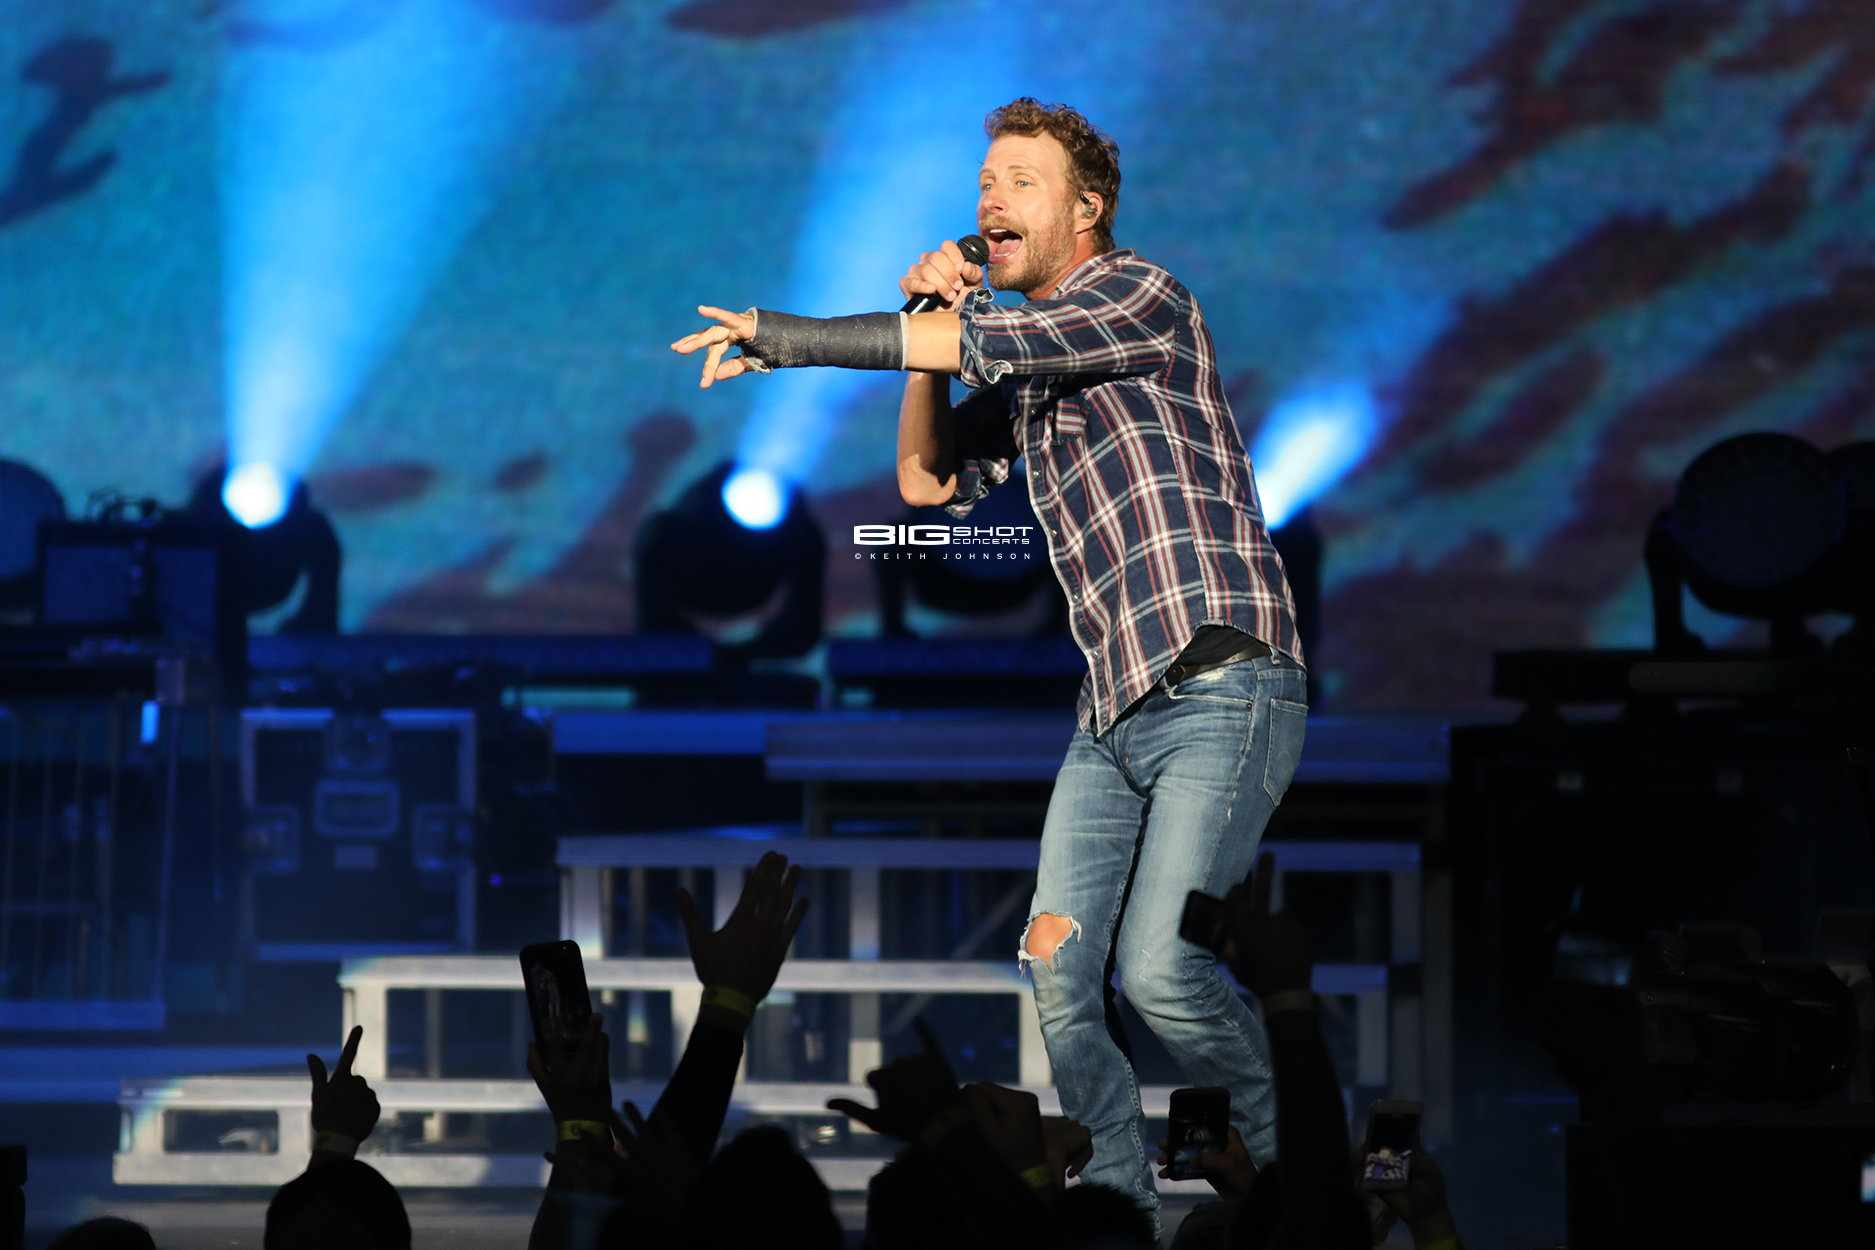 Dierks Bentley Live in West Palm Beach, Florida